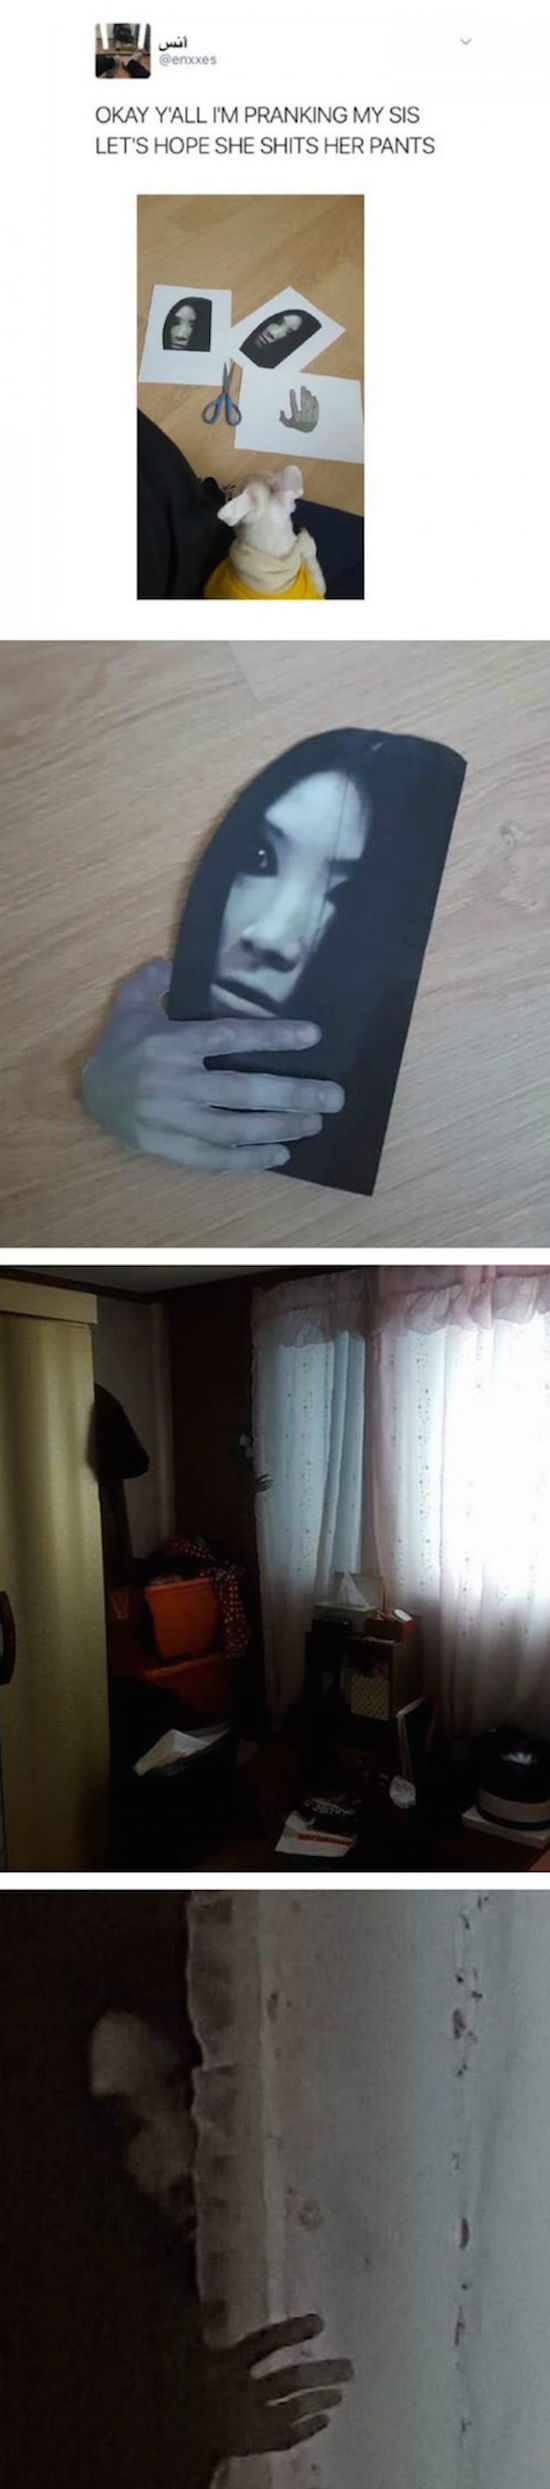 funny prank with scary face cutout to scare sister